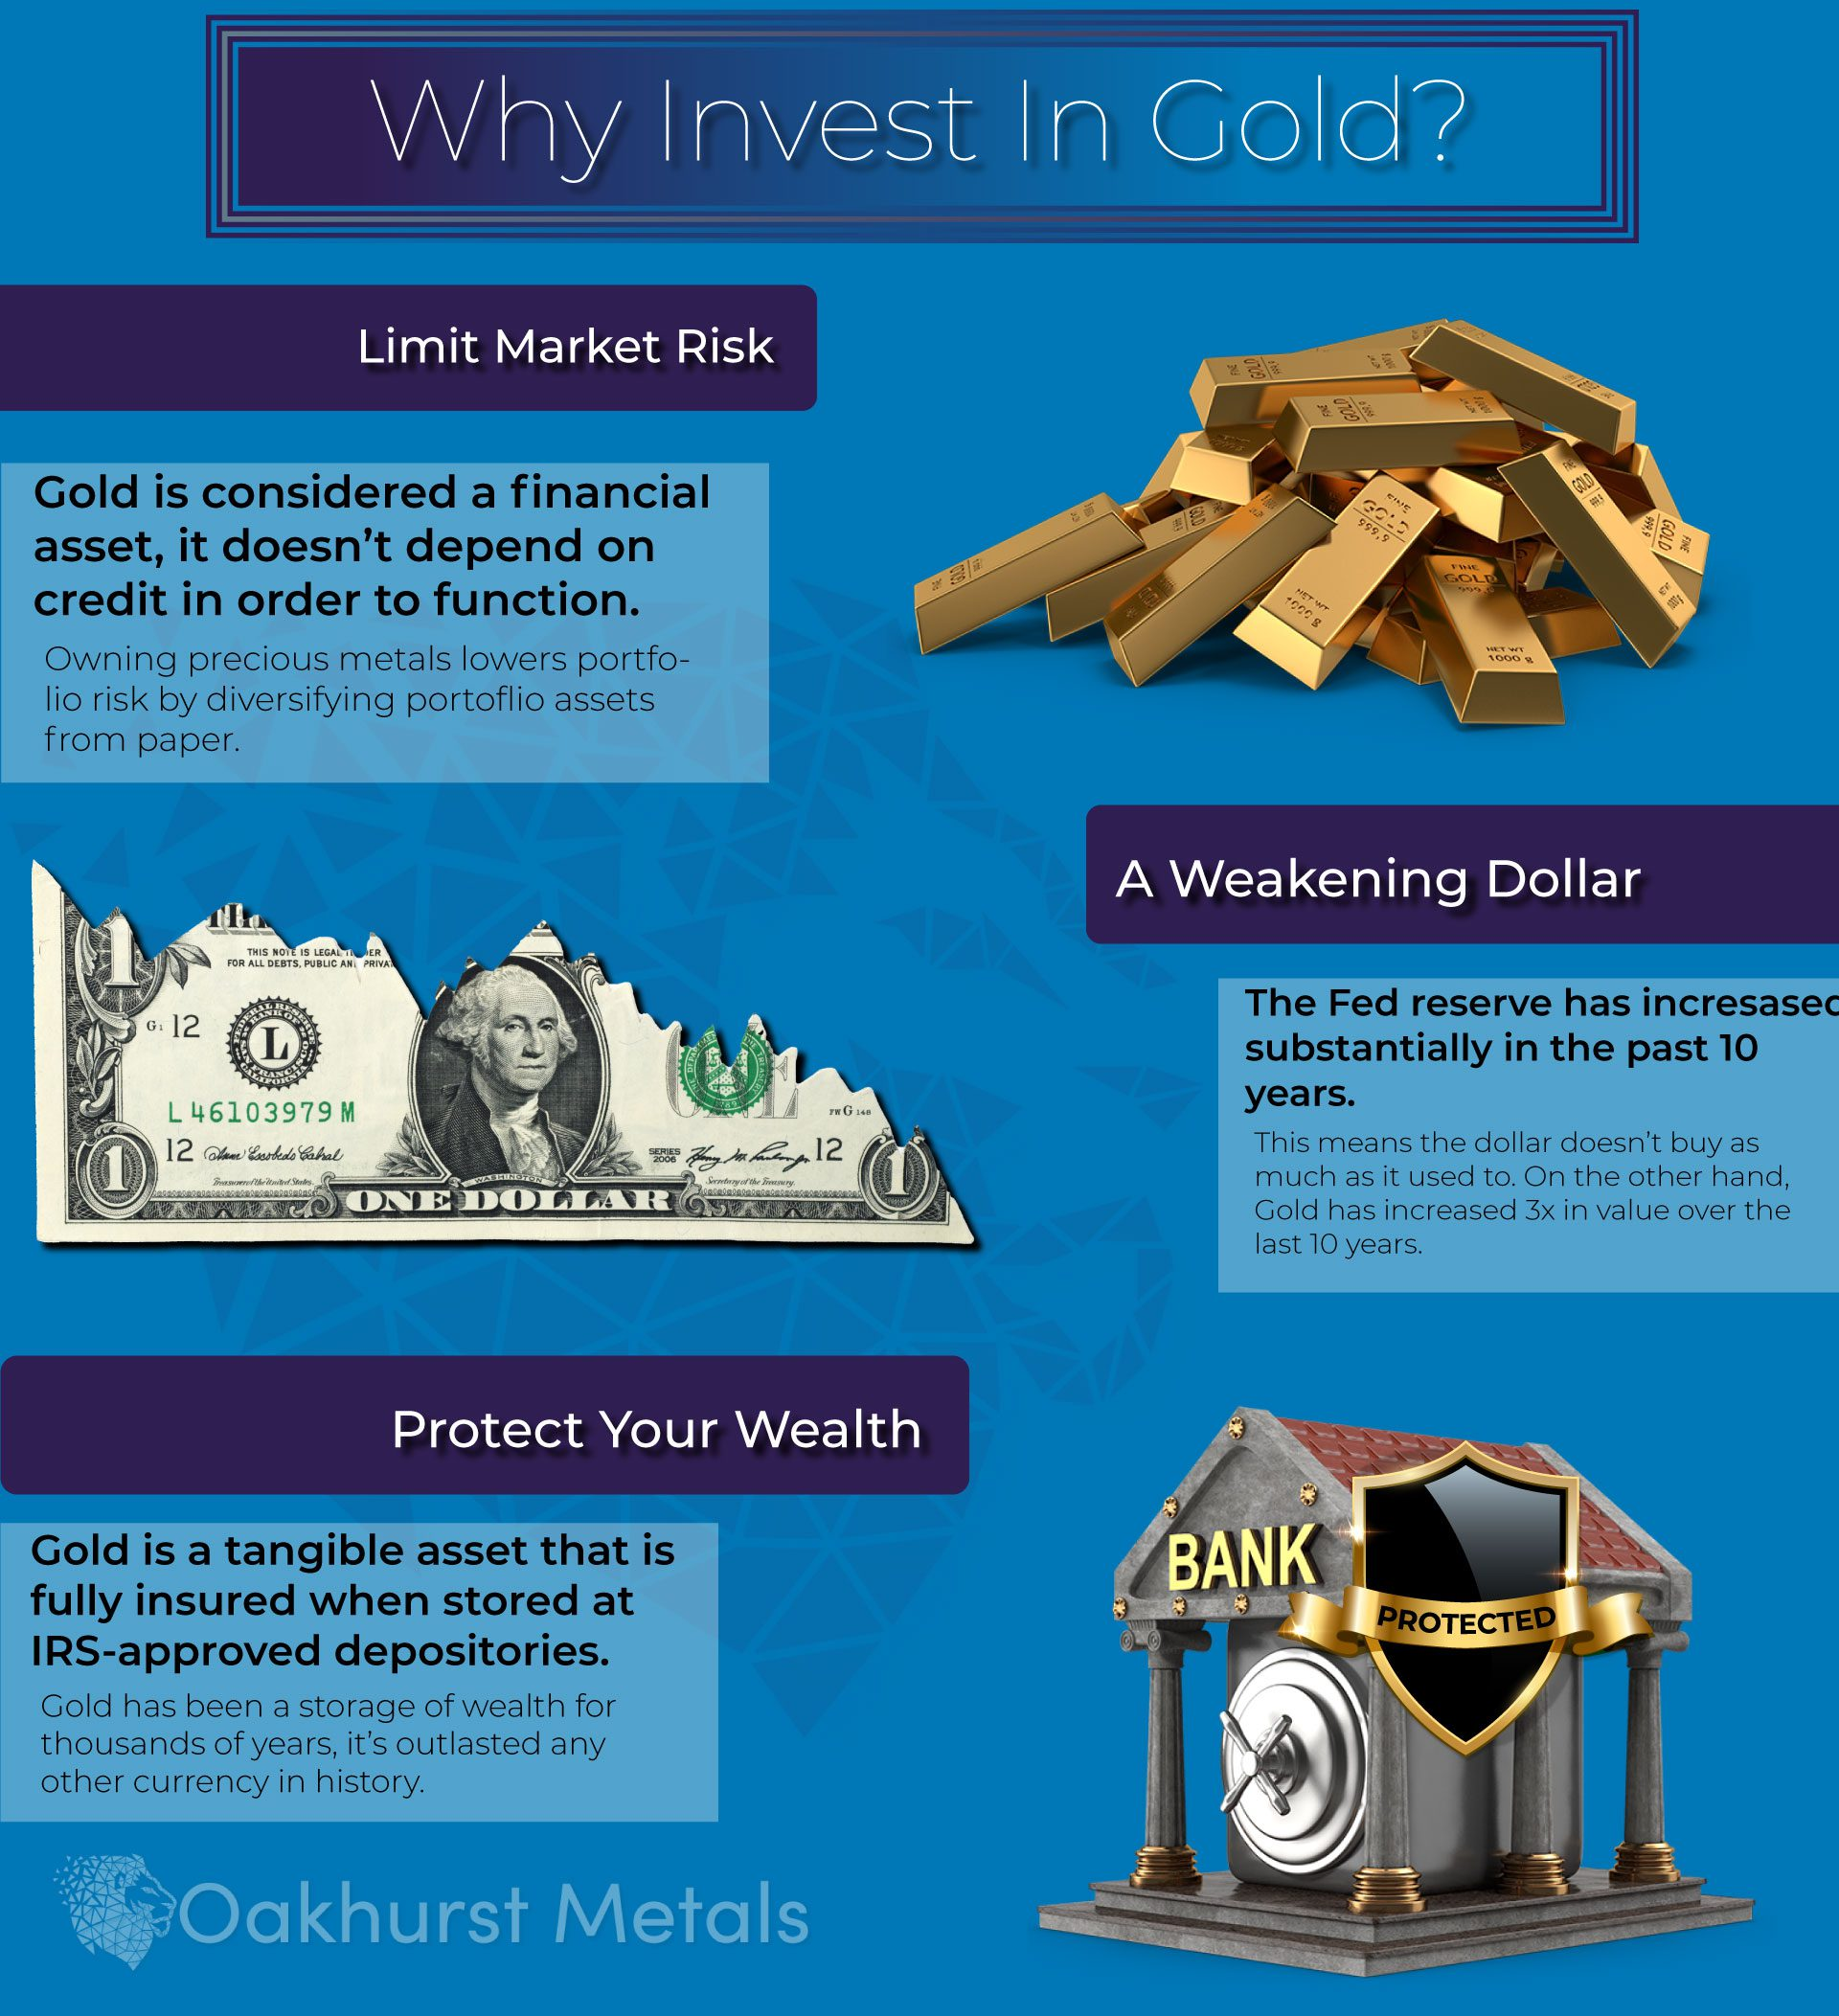 Infographic listing common reasons for investing in gold including limiting market risk and the weakening US dollar